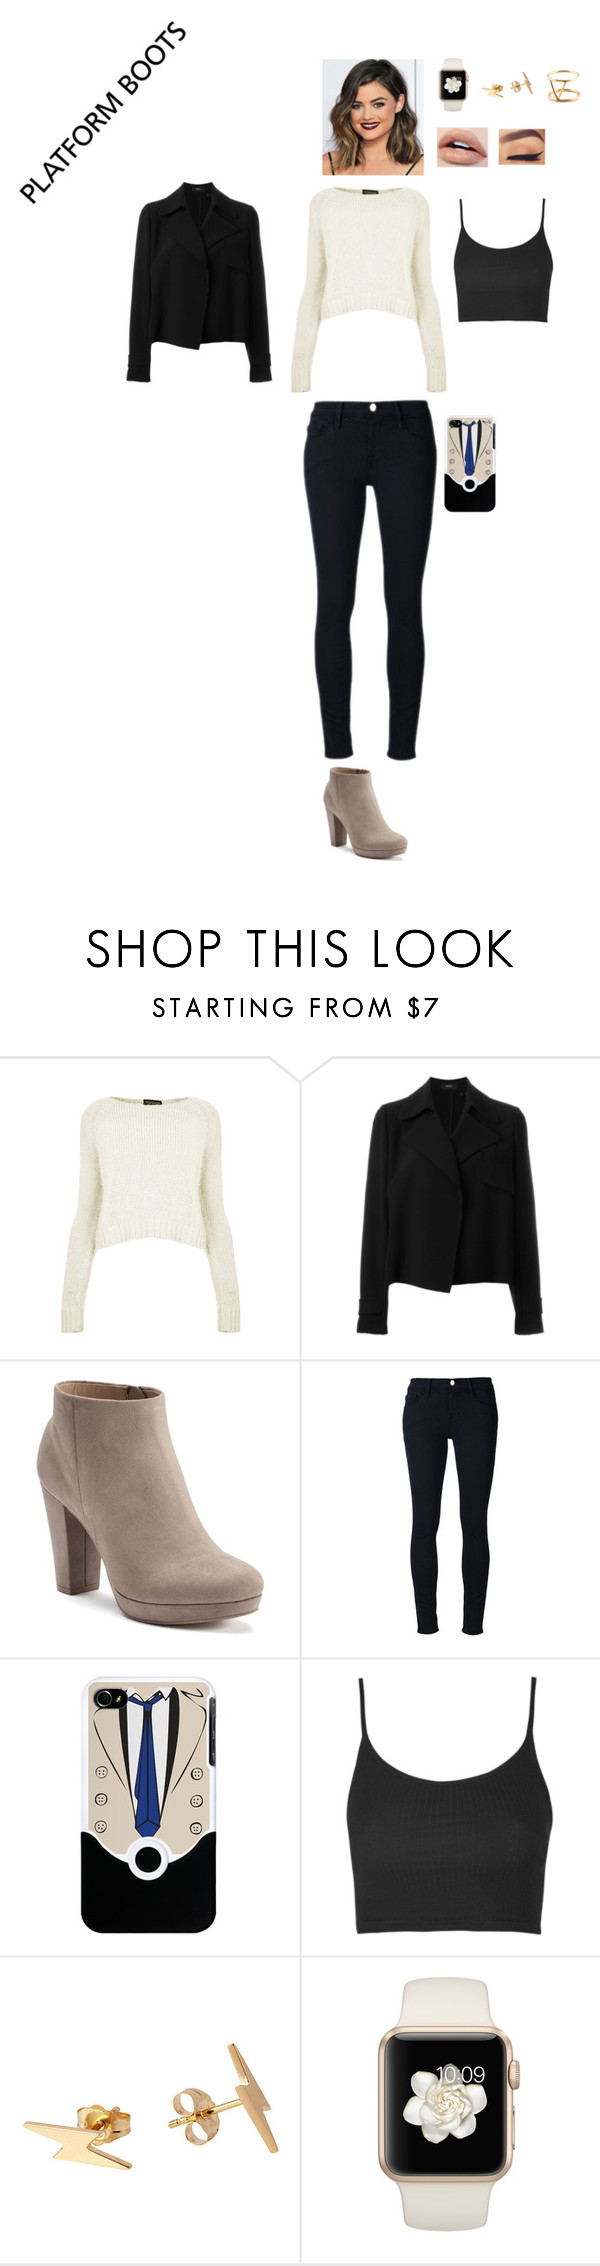 """""""Kickin' It: Platform Boots"""" by leacousty55 ❤ liked on Polyvore featuring Topshop, Theory, LC Lauren Conrad, Frame and SOKO"""